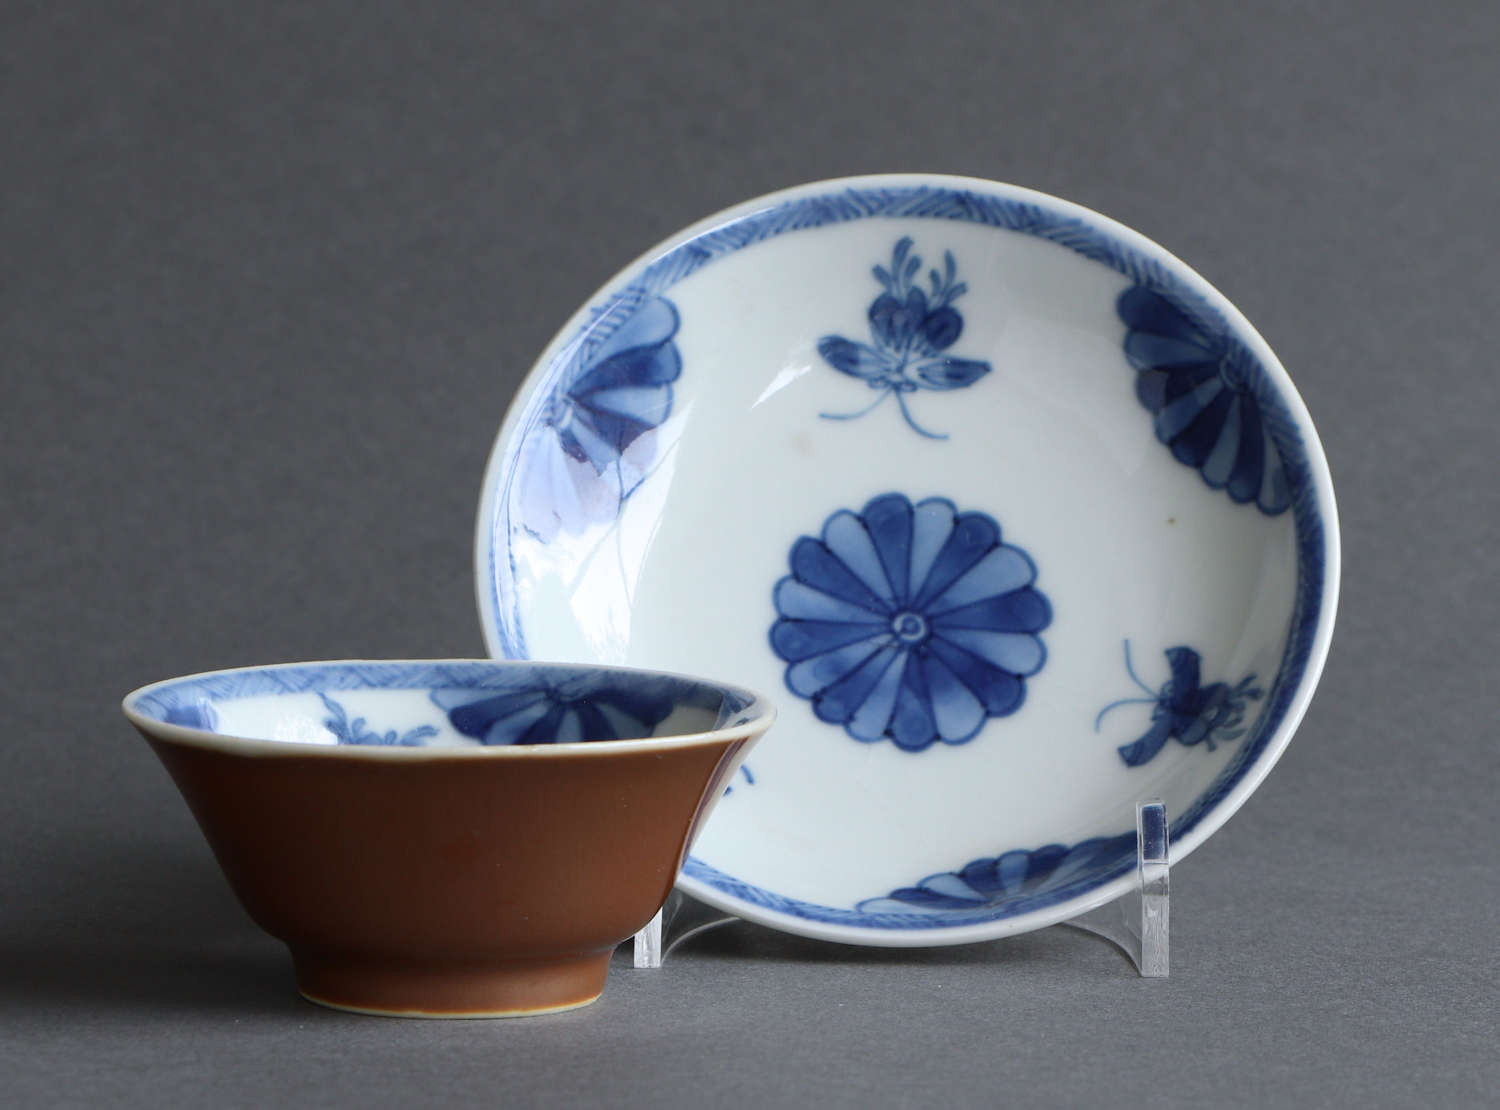 A Chinese export 'Batavian' tea bowl & saucer, Kangxi or Yongzheng